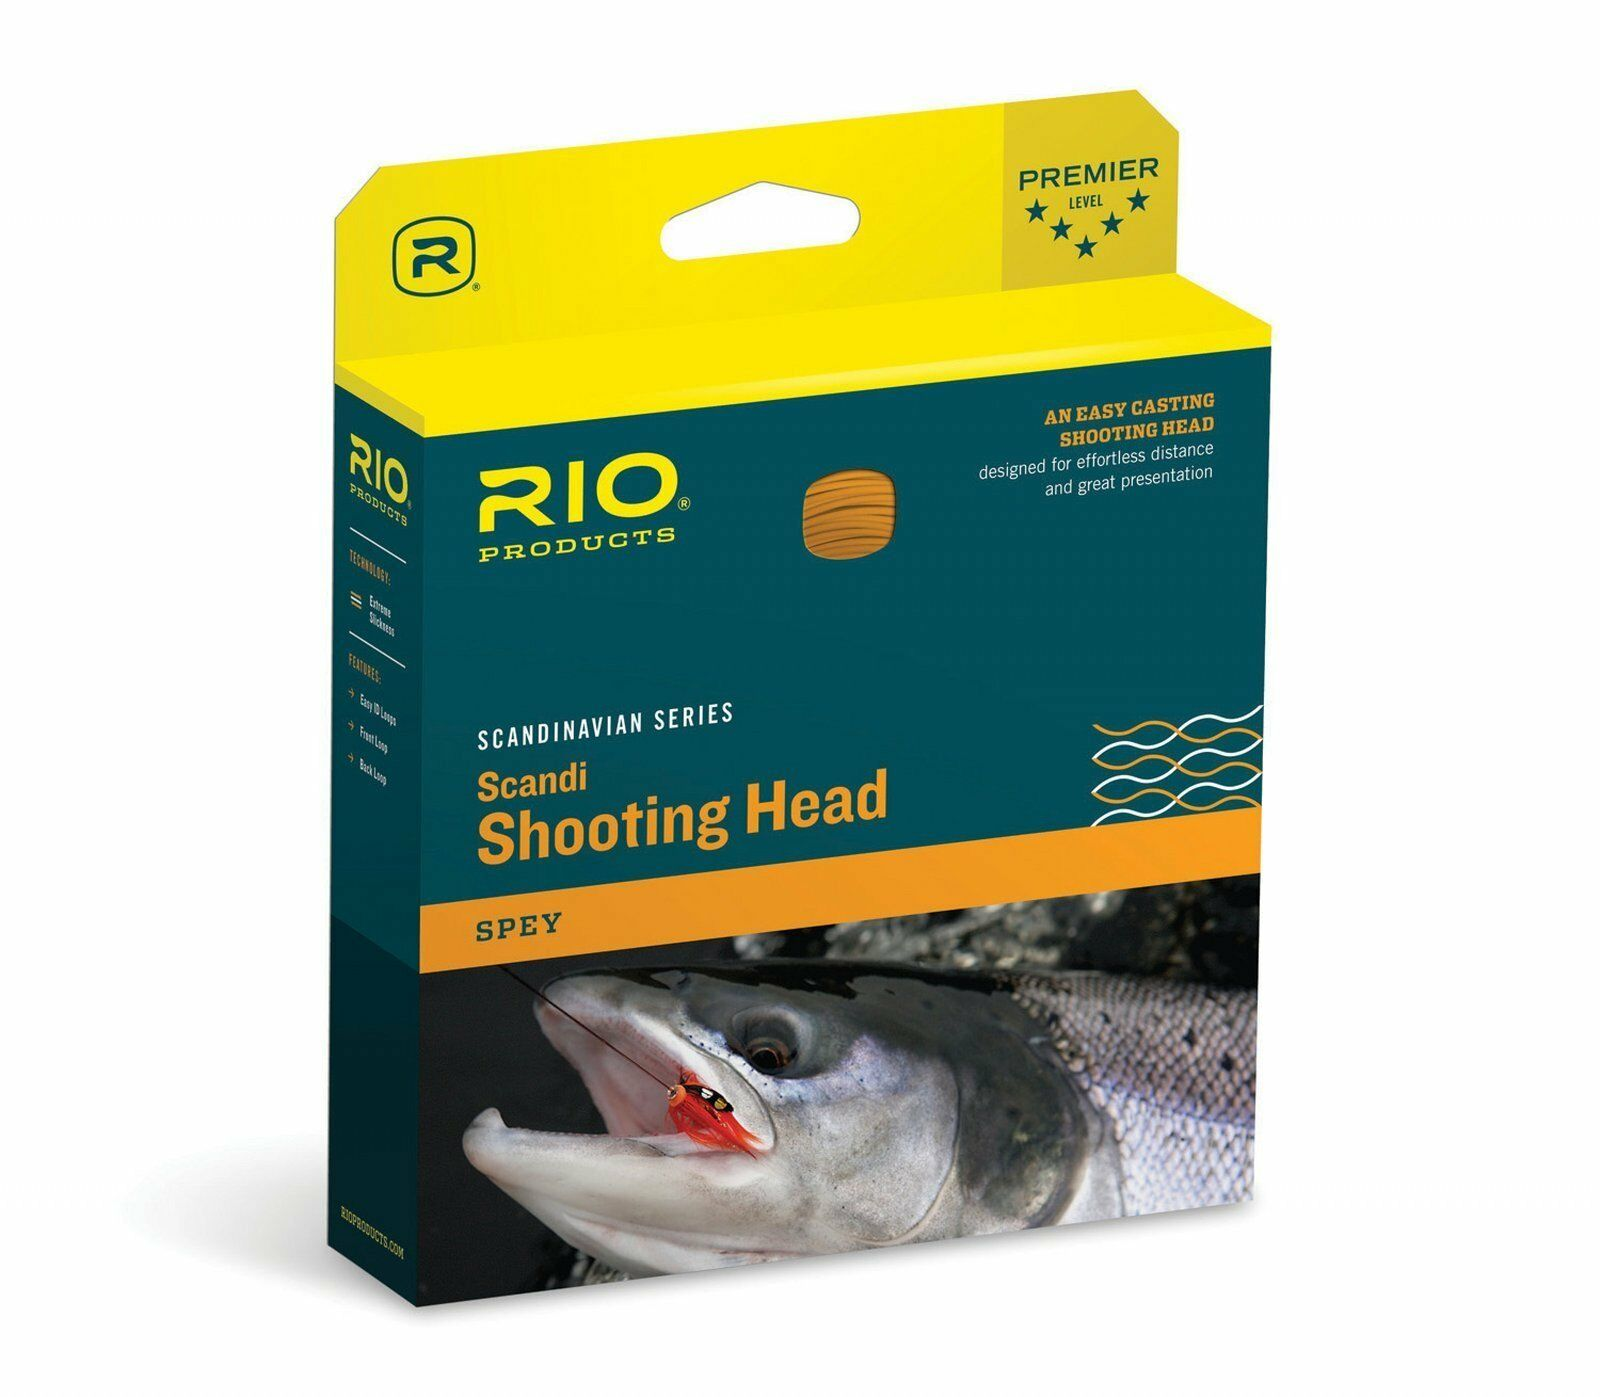 RIO NEW SCANDI SHORT 420-GR 420-GR SHORT 6/7 WT SPEY ROD CONNECTCORE SHOOTING FLY LINE HEAD 282160